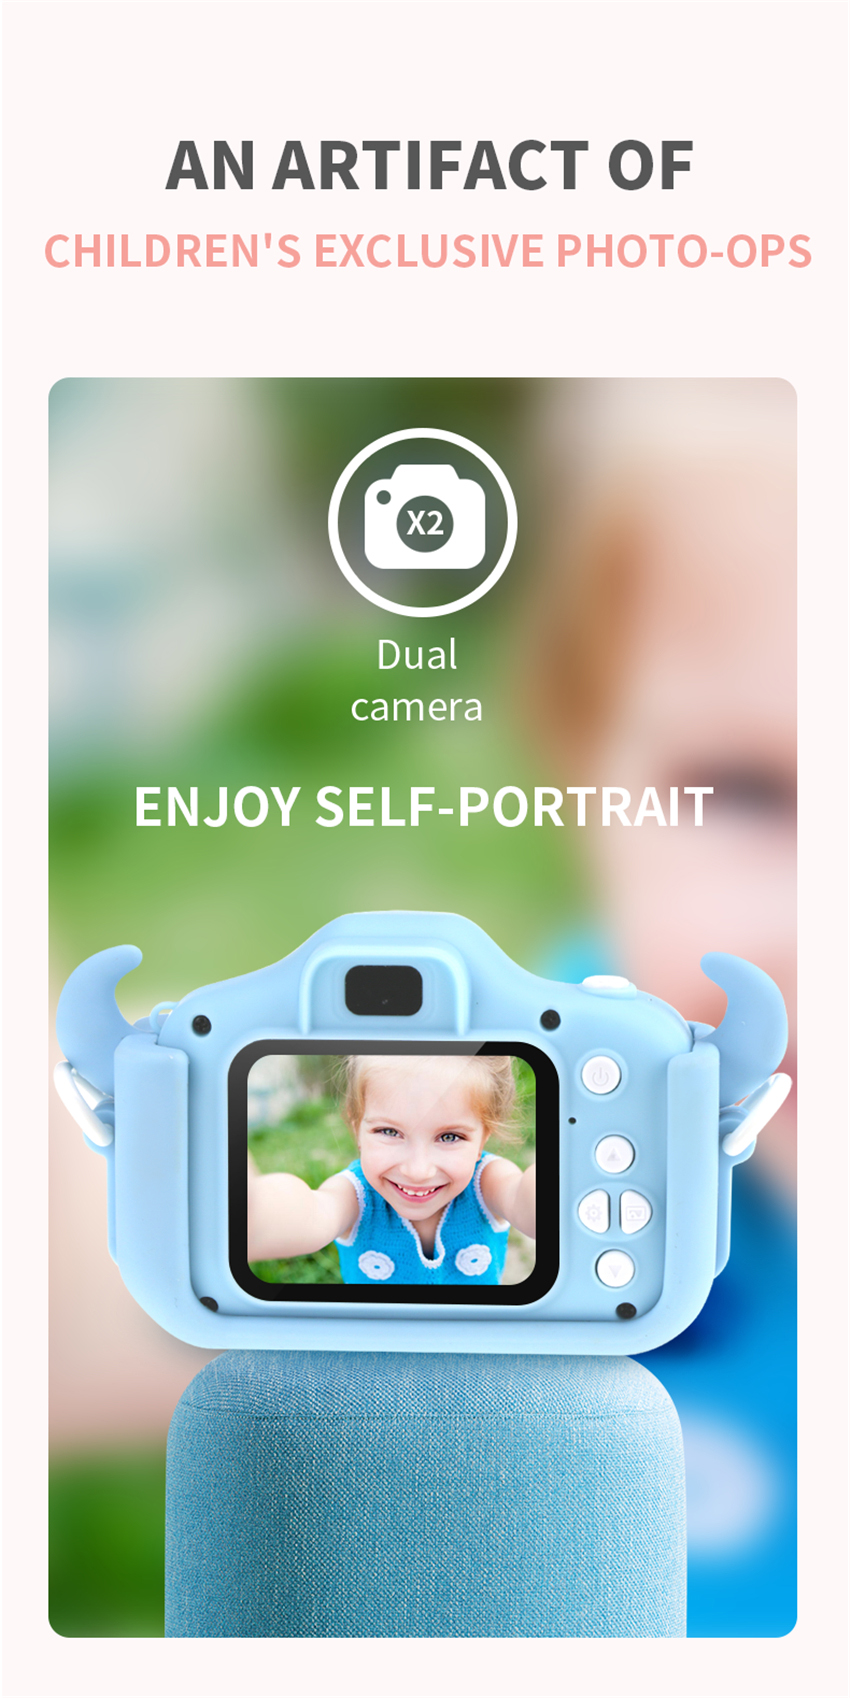 Hc54634c69ce34d44b3af3a91cc0e98a8U x8 2.0 inch Screen Kids Camera Mini Digital 12MP Photo Children Camera with 600 mAh Polymer Lithium Battery Toys Gift